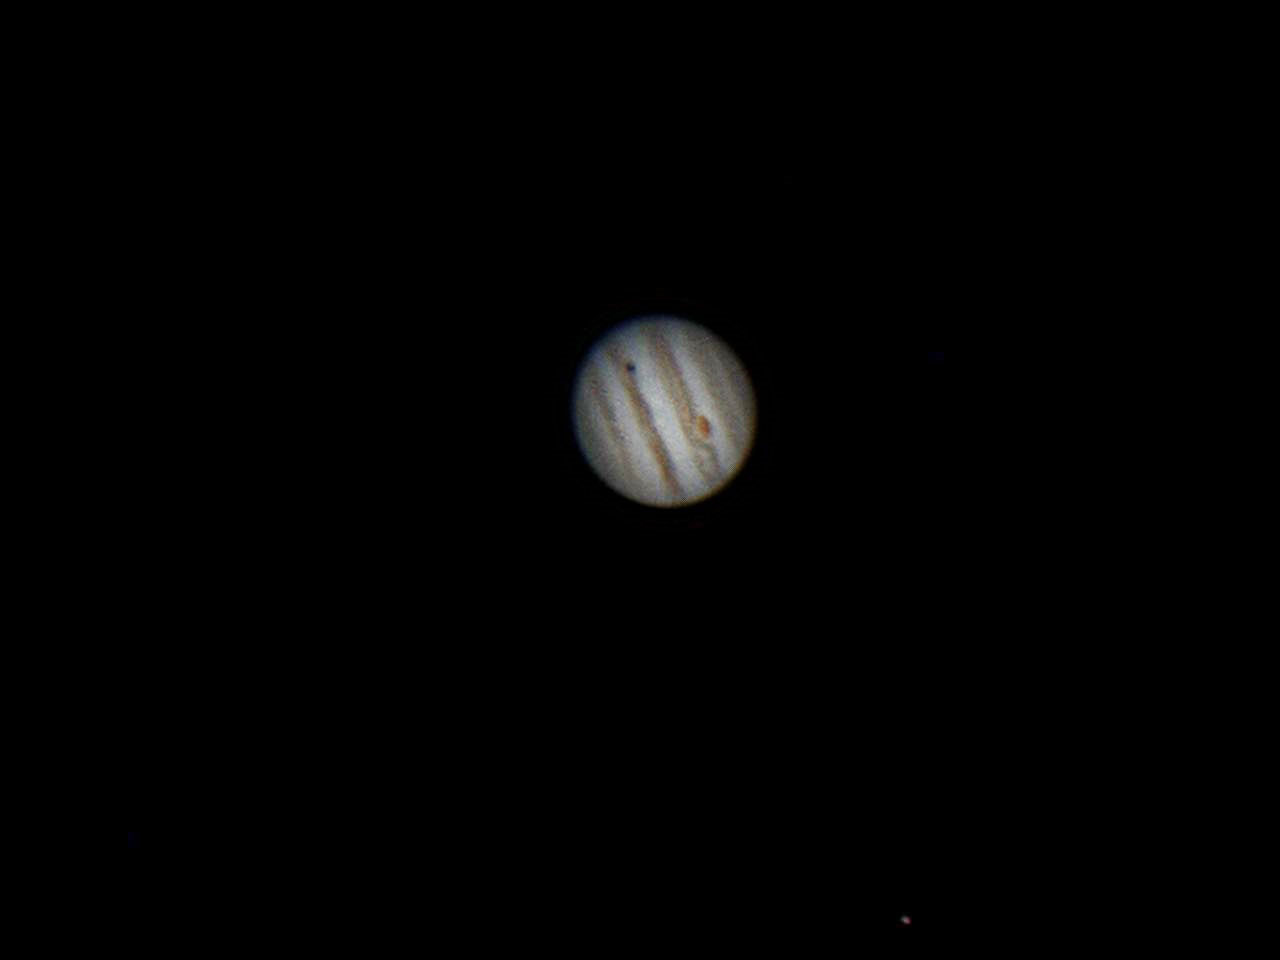 jupiter_traitement_registax_v6 le 28/11/2015 Dominique